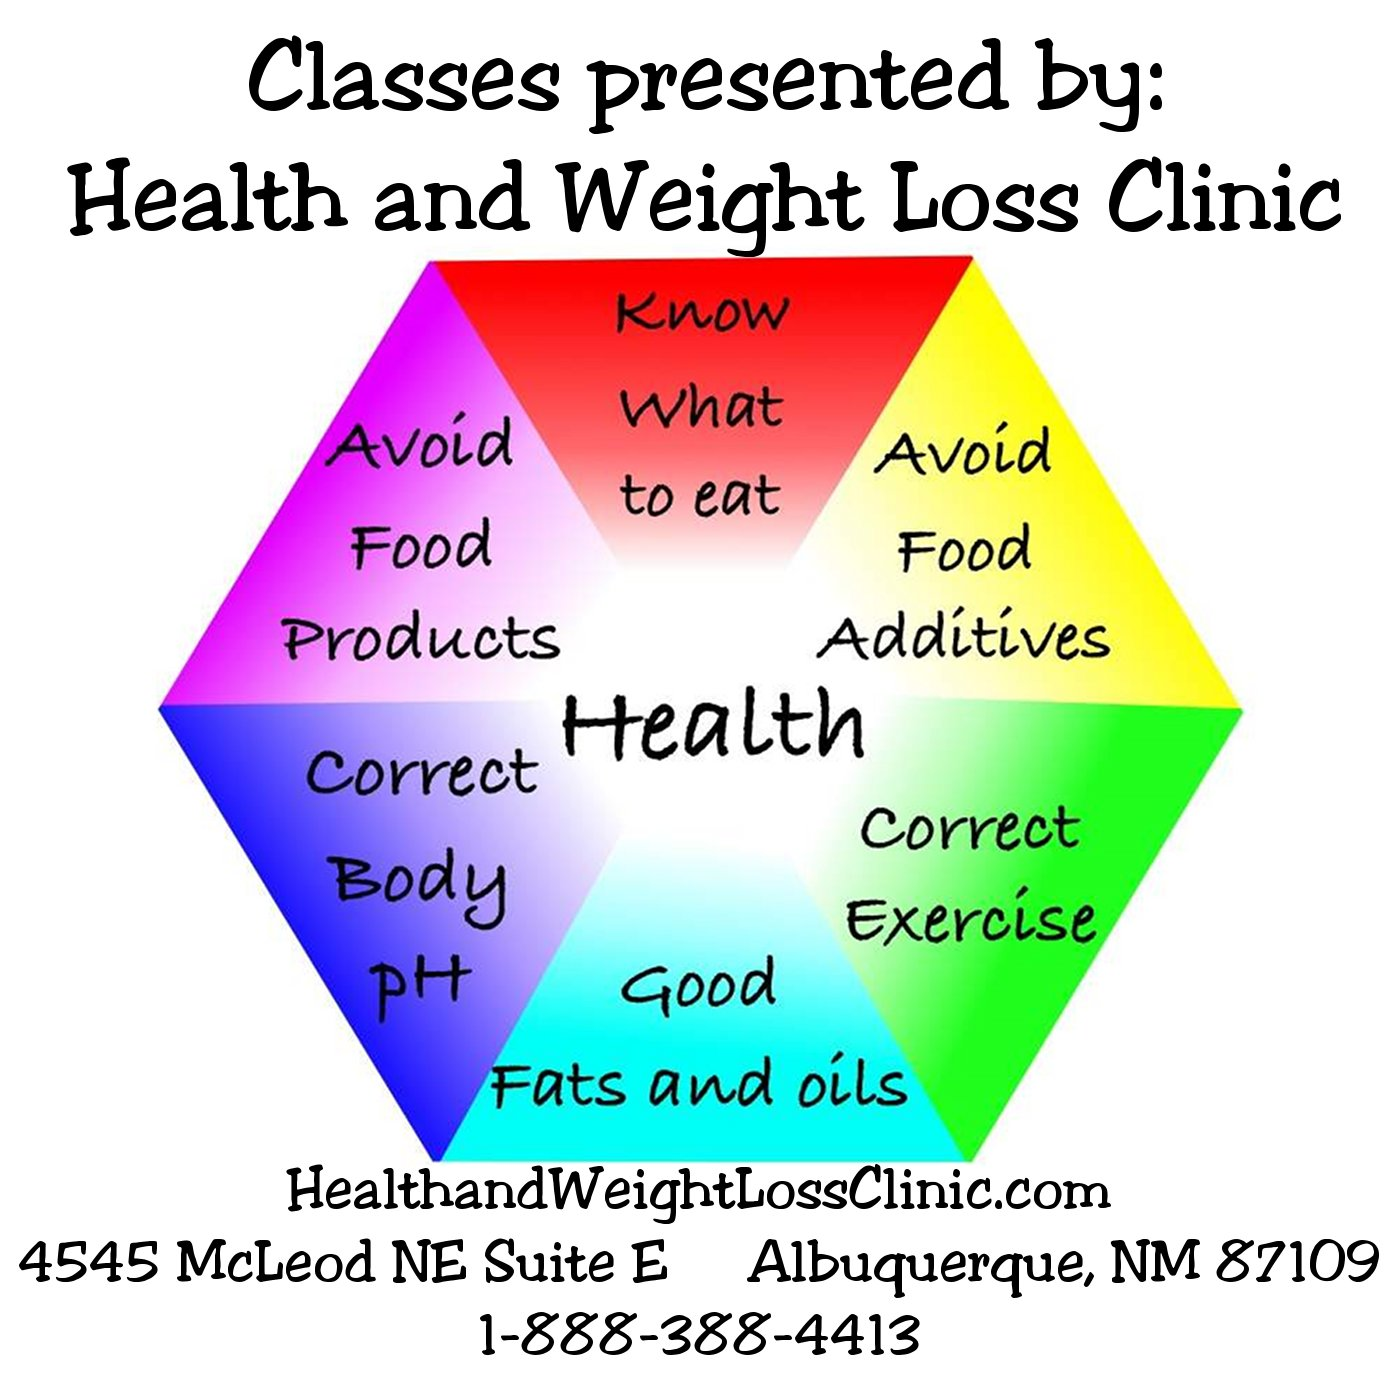 February 18, 2014- 6 Elements of Health - Health and Weight Loss Clinic